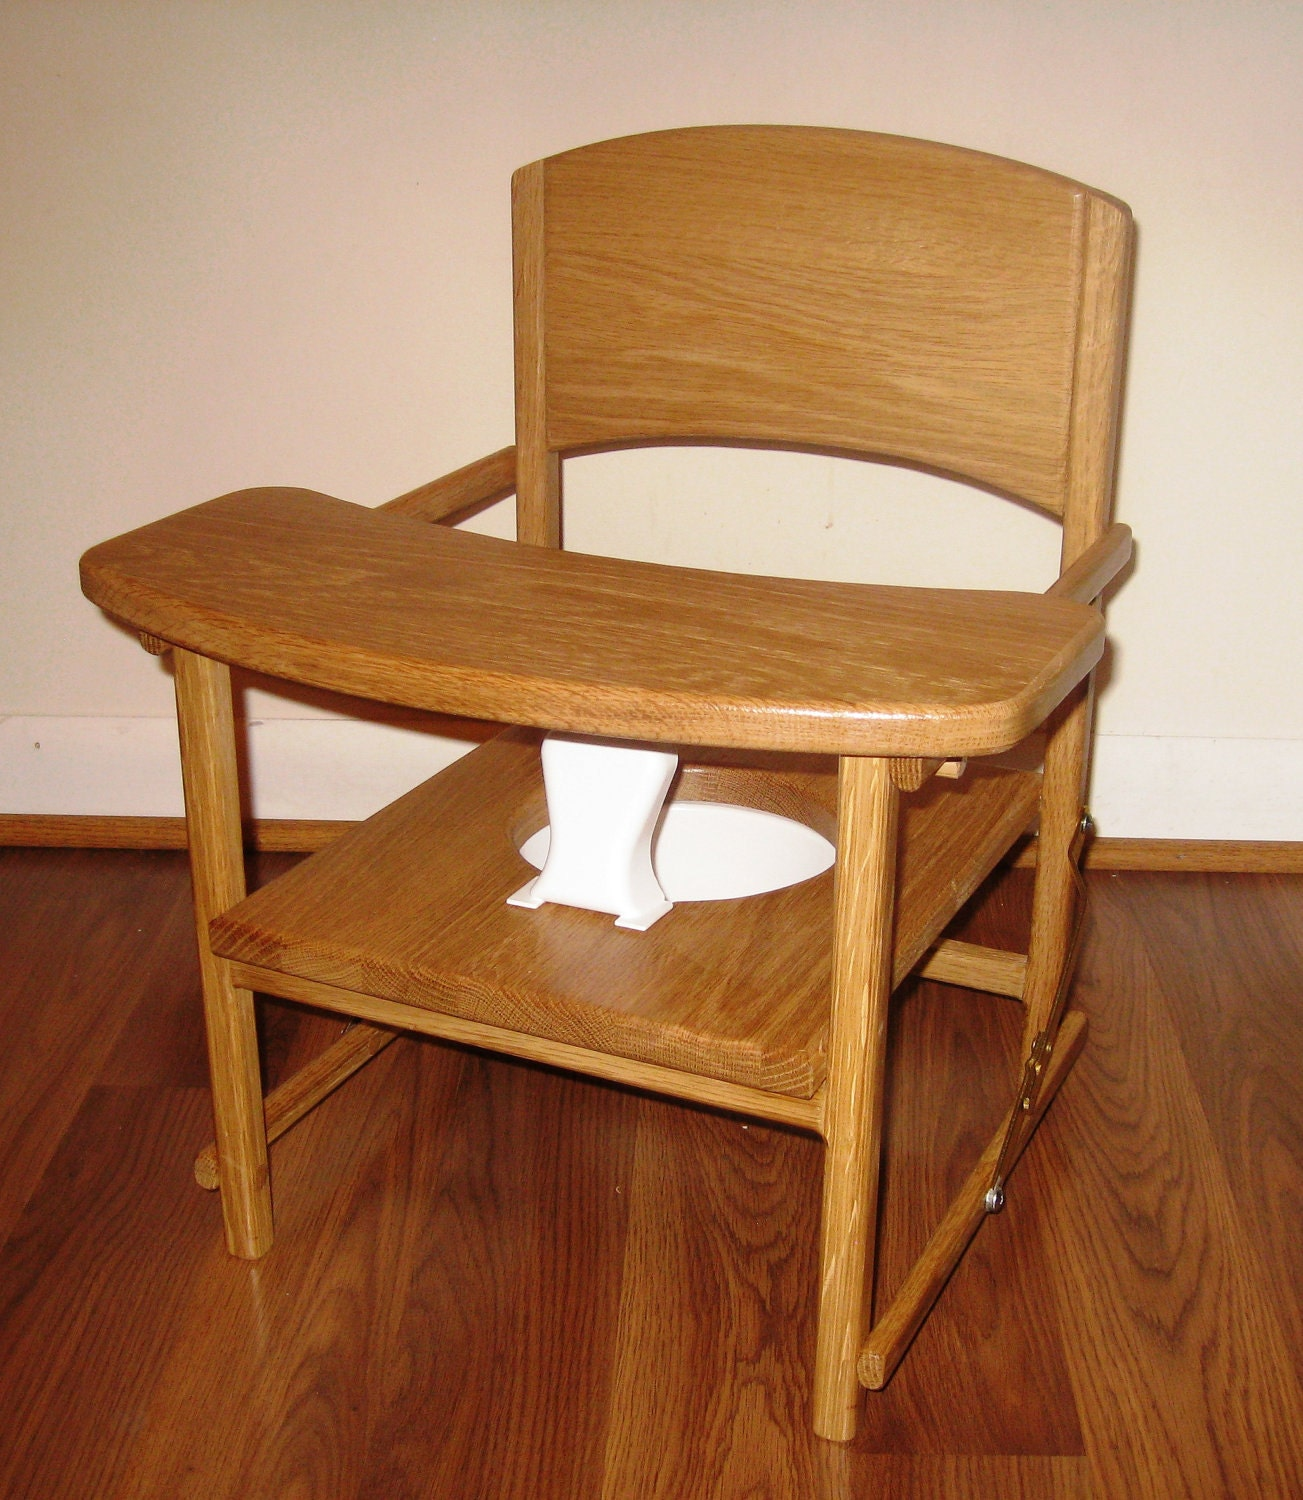 Folding Commode Chair Toddler Folding Potty Chair with Tray by dgwood on Etsy